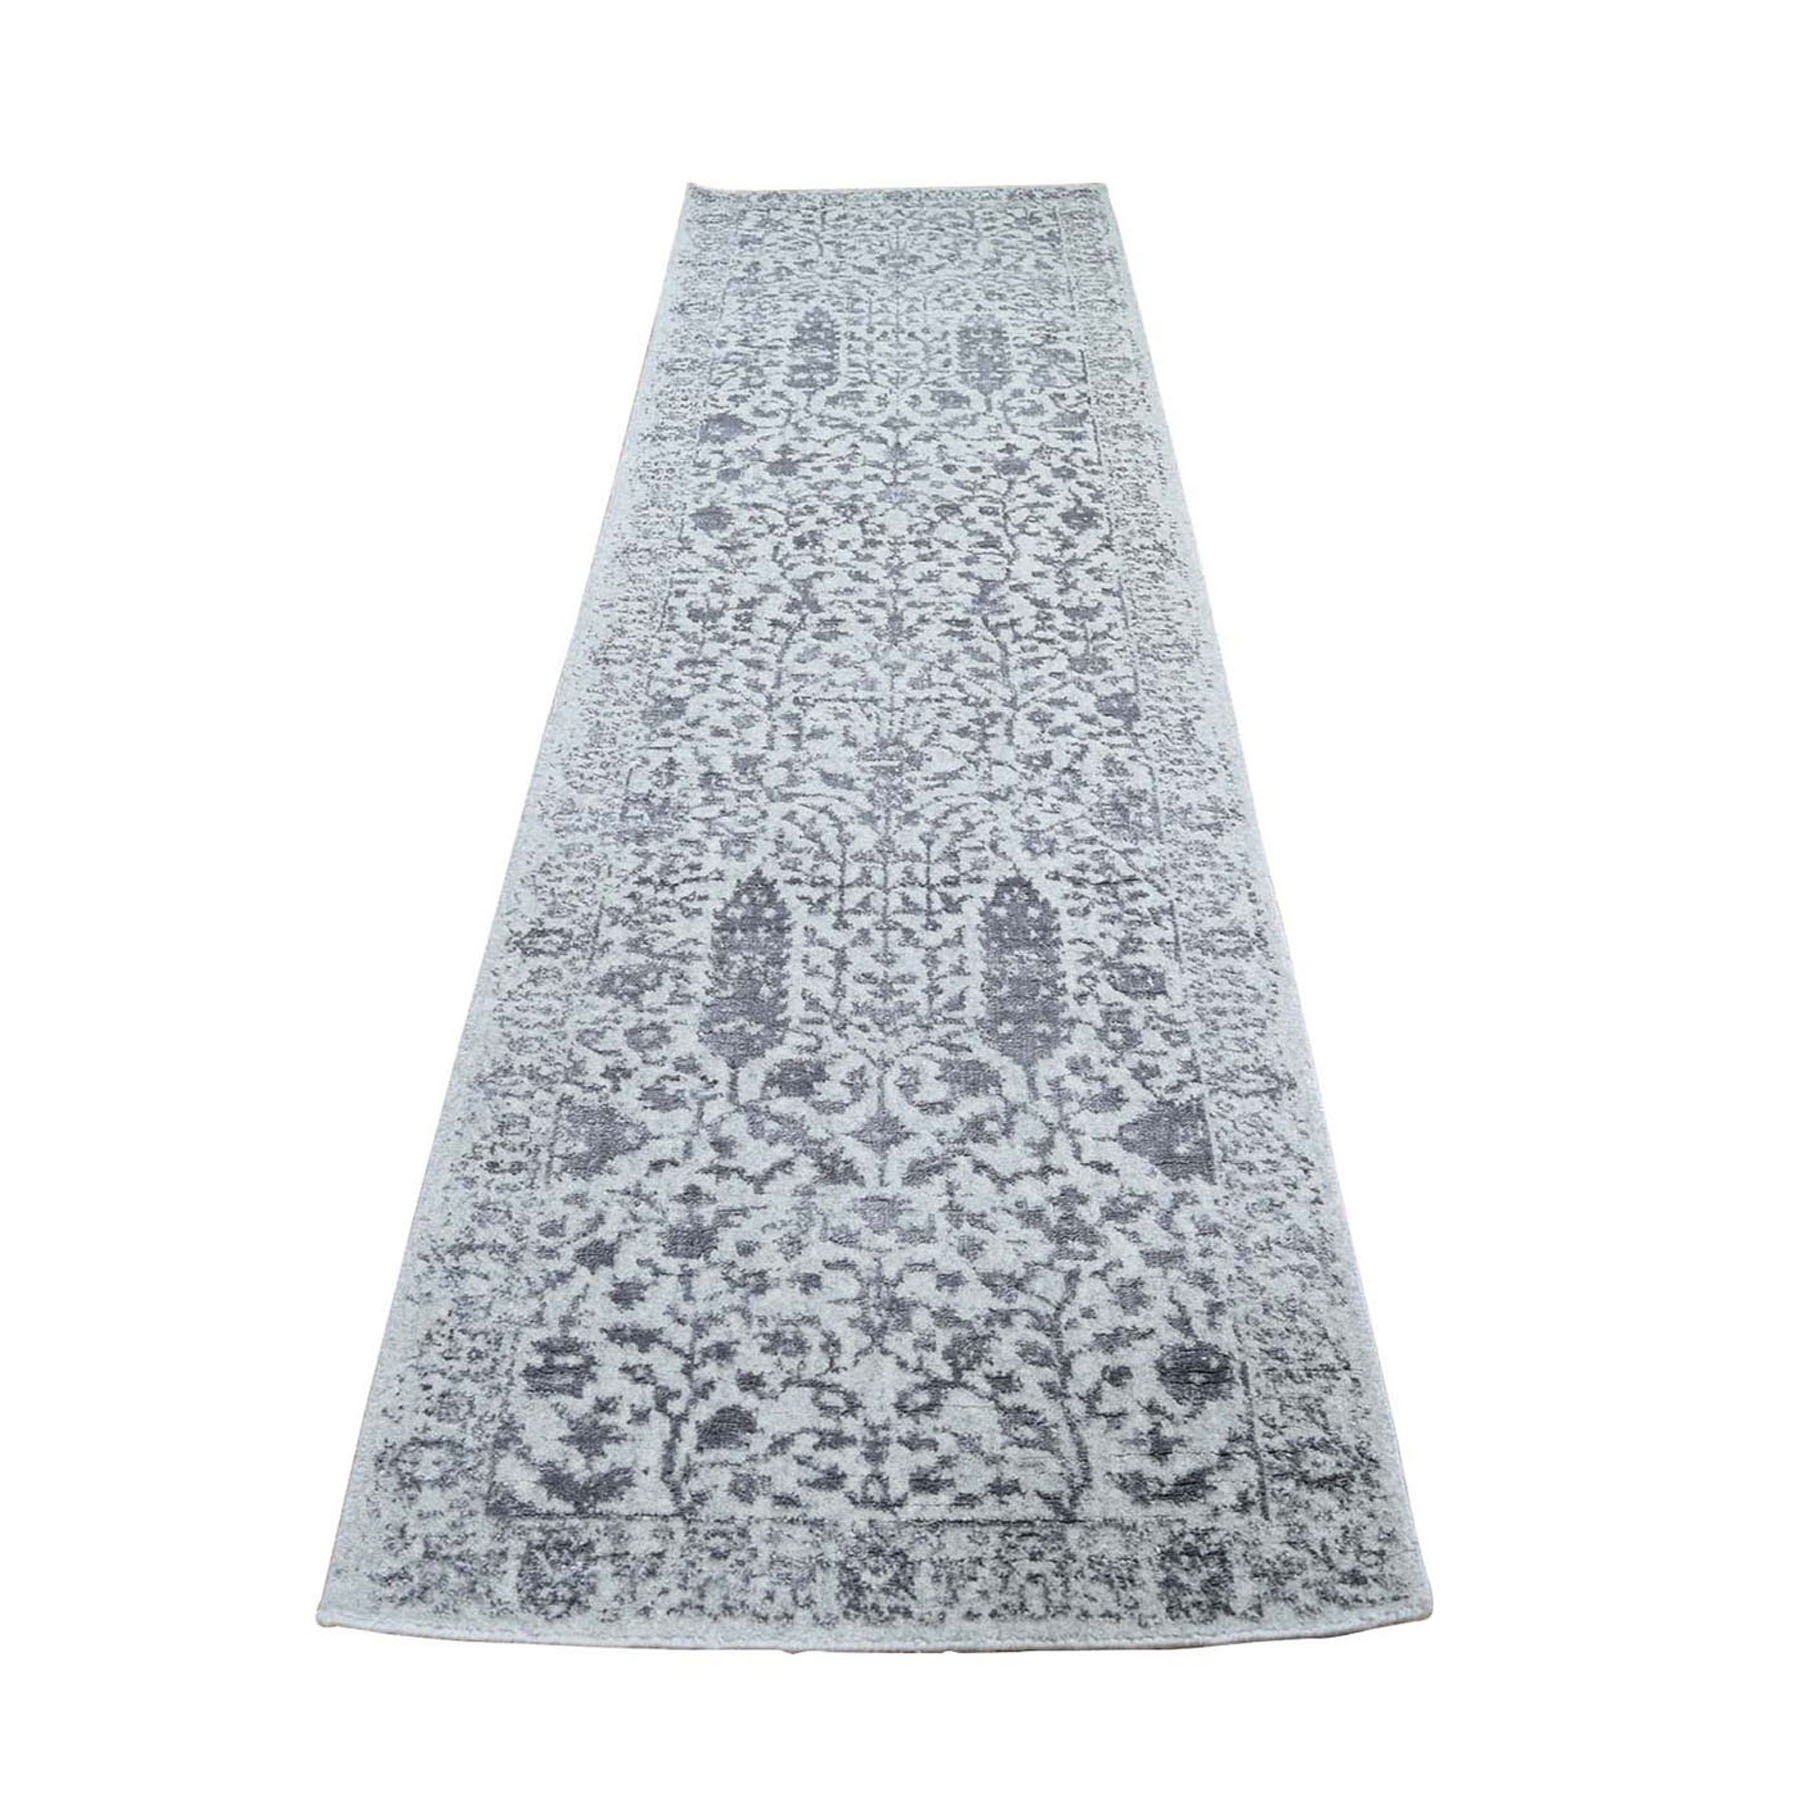 "2'5""x8' Gray Jacquard Hand Loomed Broken Cypress Tree Design Silken Thick and Plush Runner Oriental Rug"